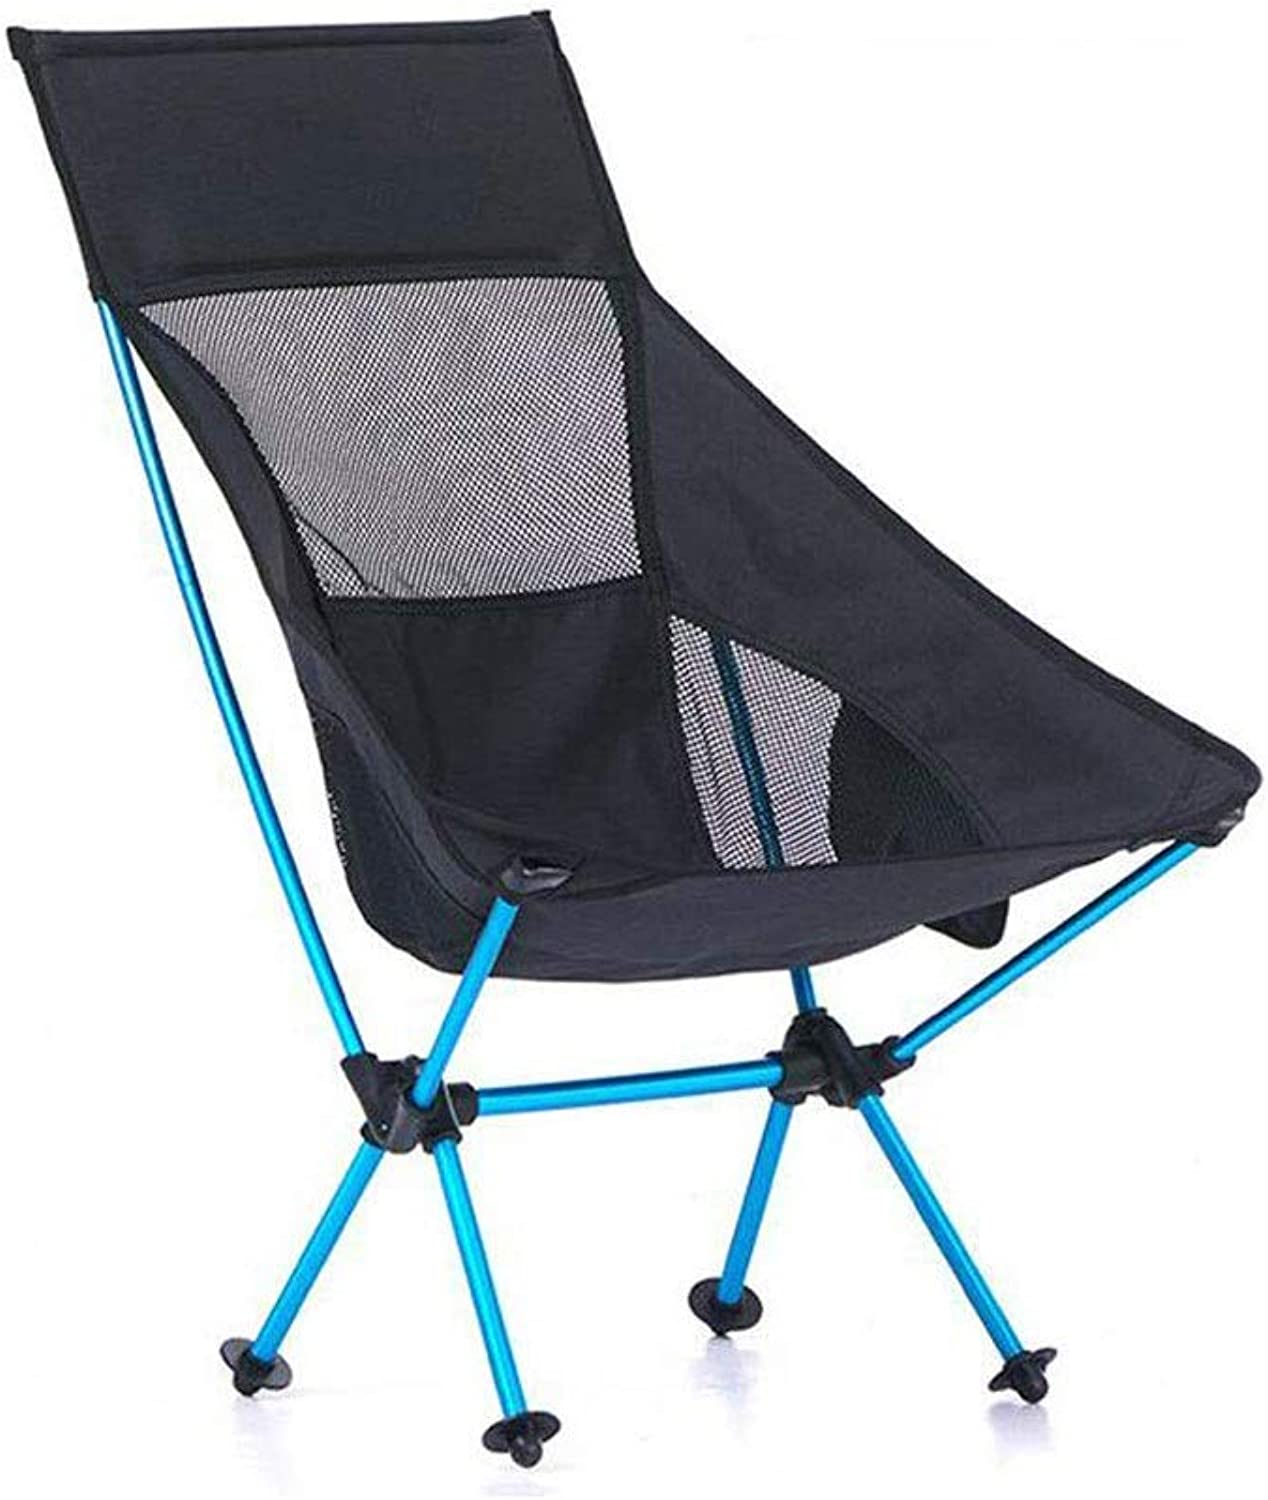 LZRDZSW High and Folding Director Chair,Outdoor Portable Ultra Light Folding Chair Fishing Leisure Chair Stool Sketch Chair Beach Chair ChairsStructure,Comfortable High Back Design (color   Black)